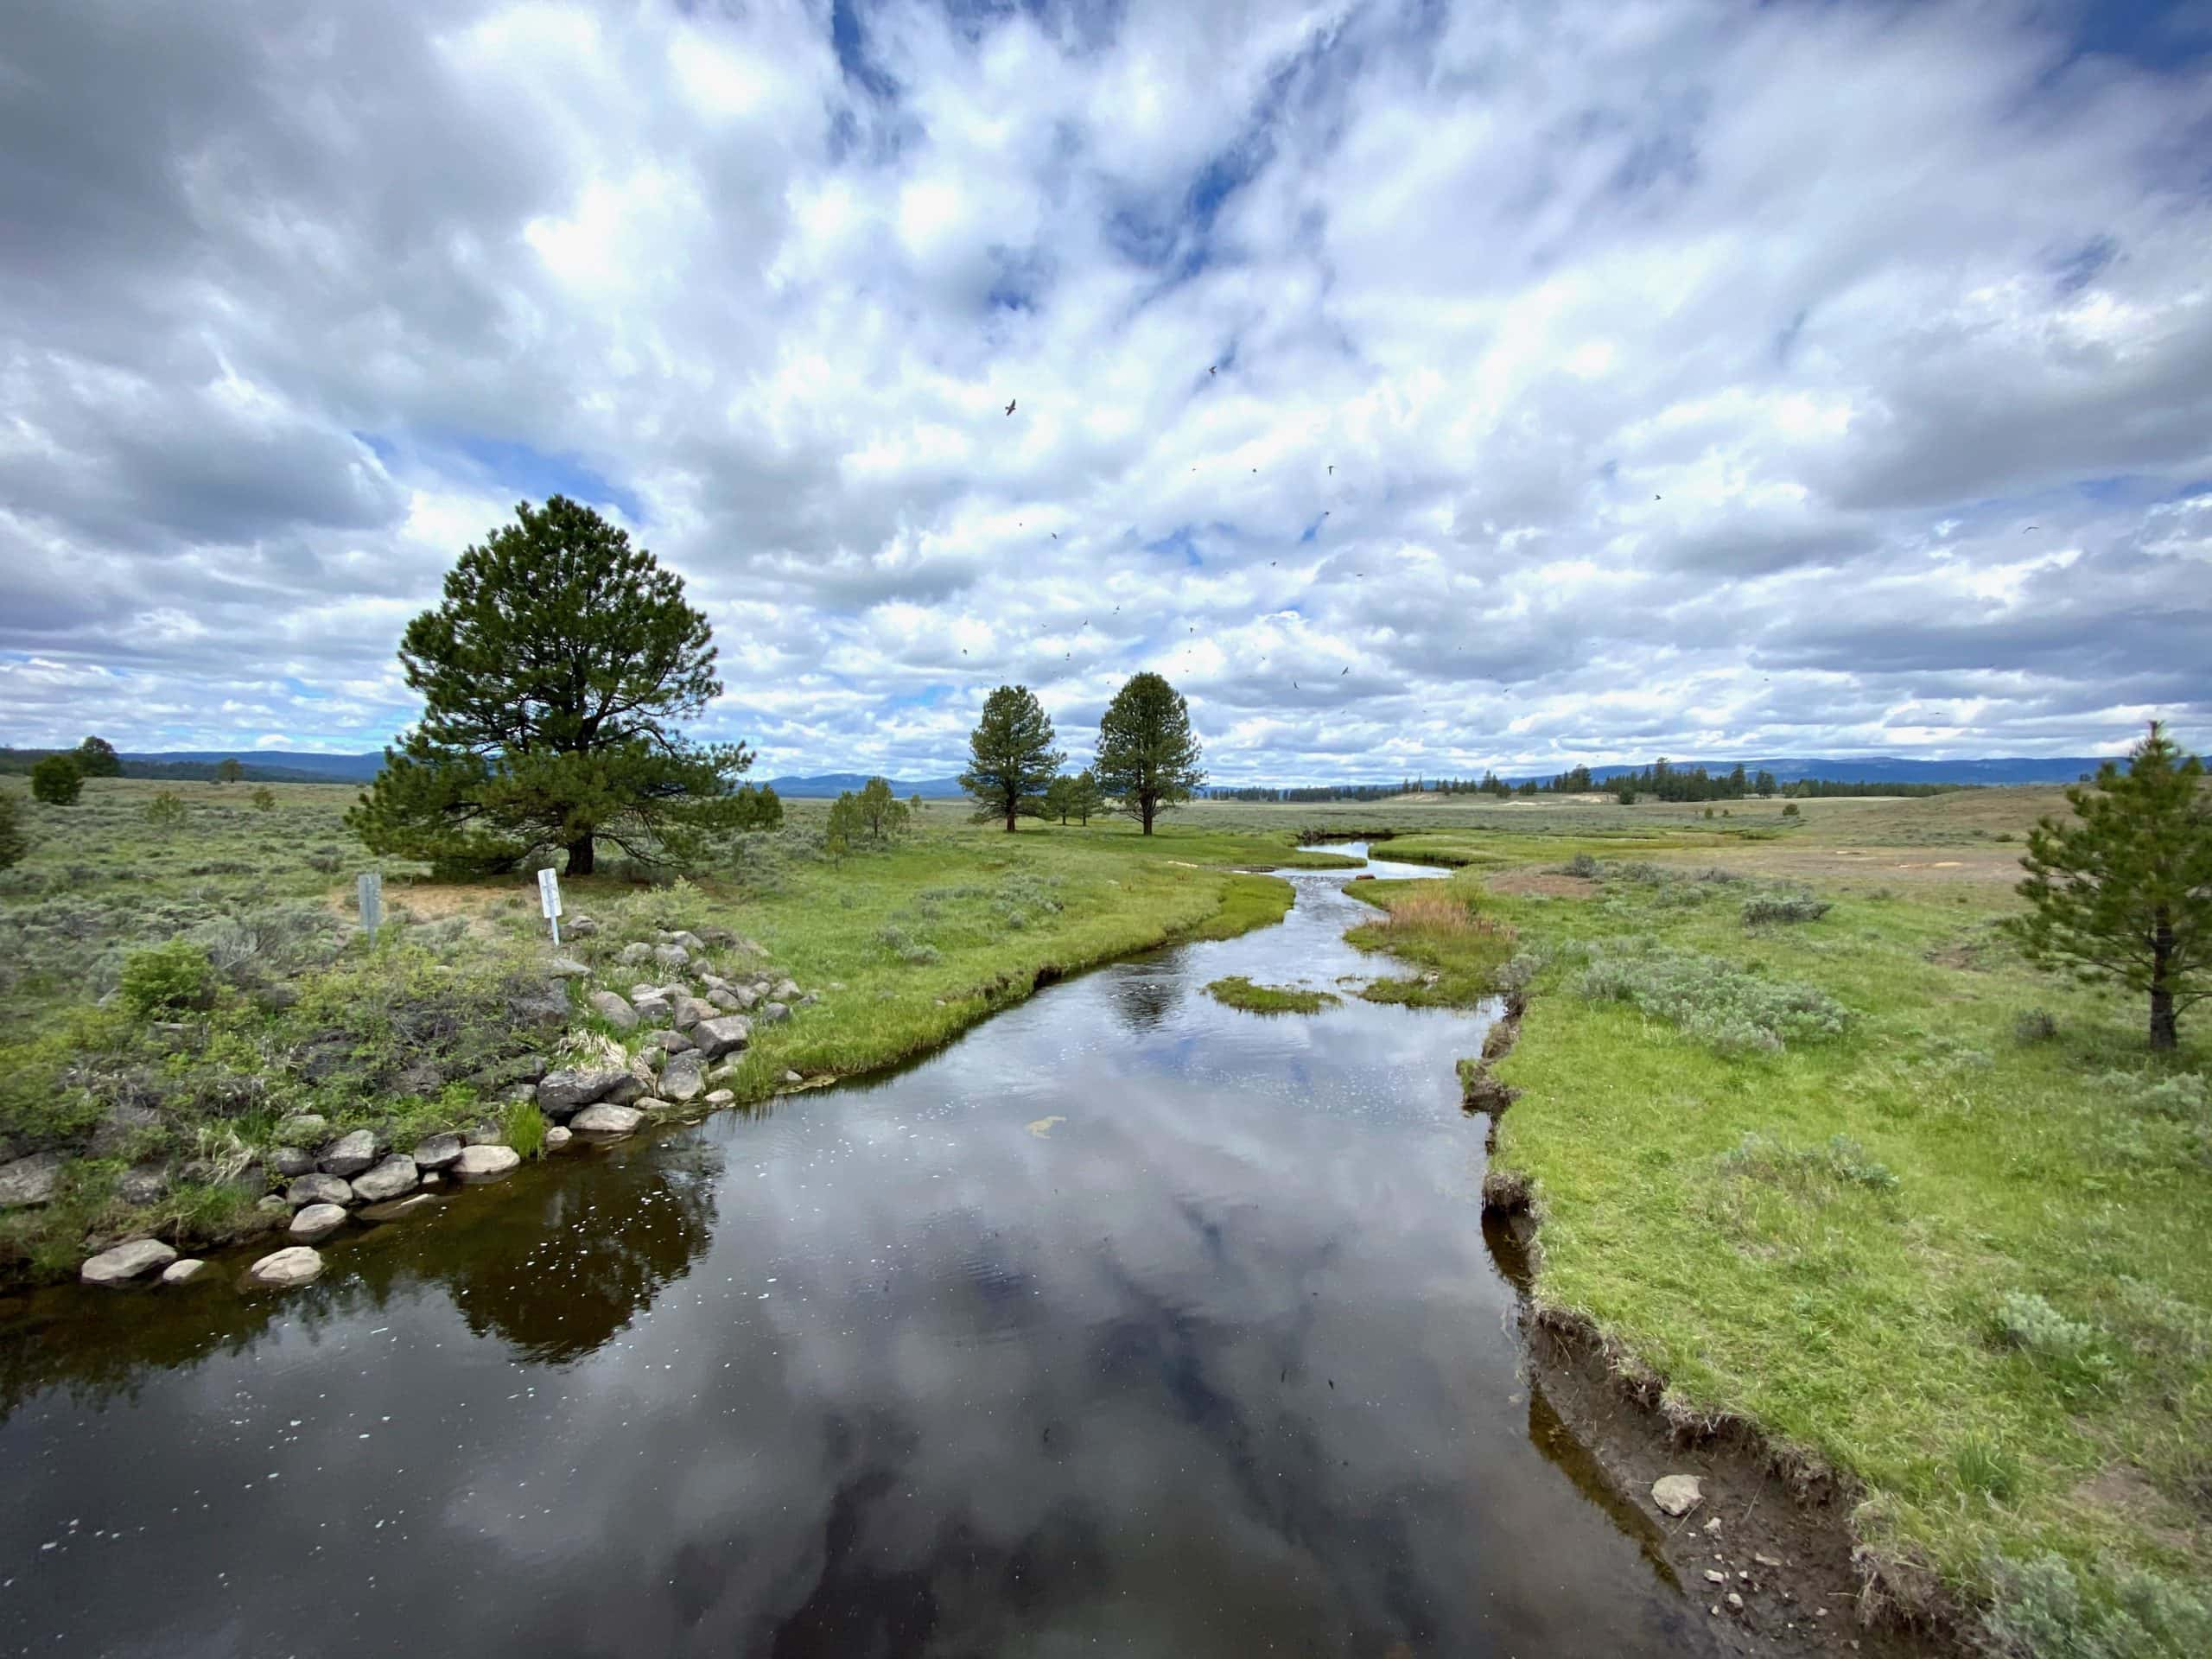 The North Fork of the Crooked river in Big Summit Prairie.